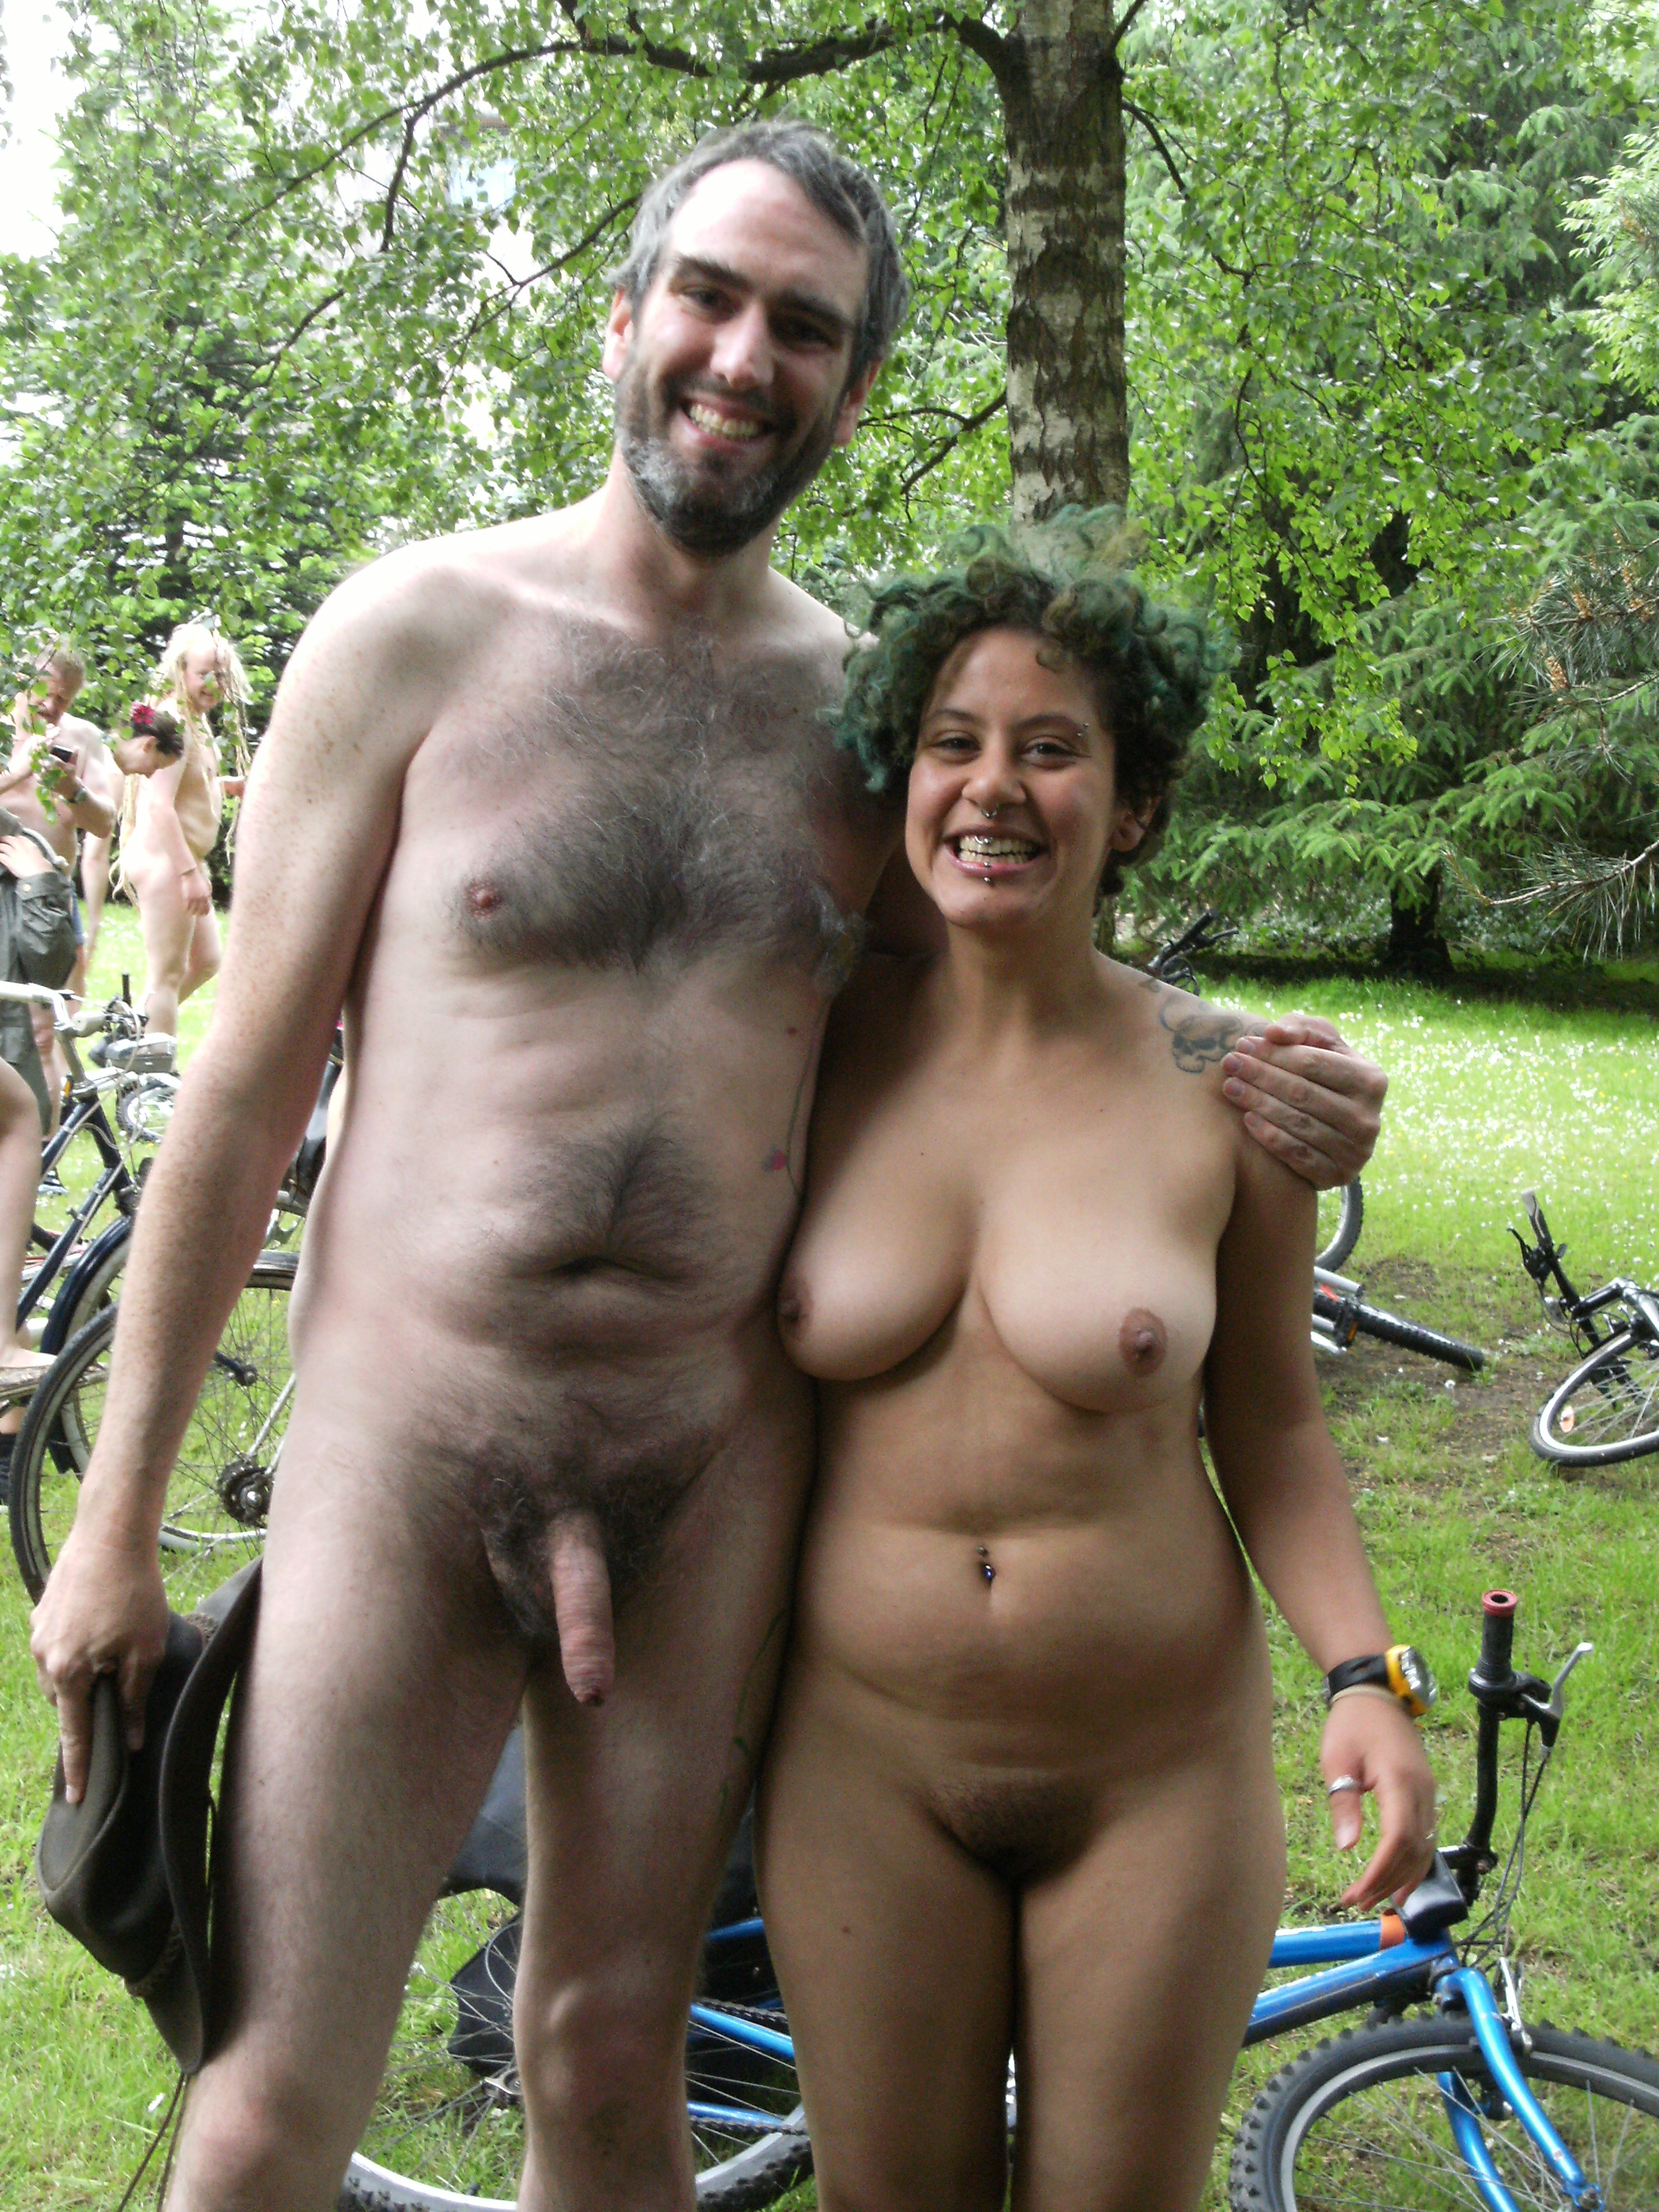 pics of naked boob couple